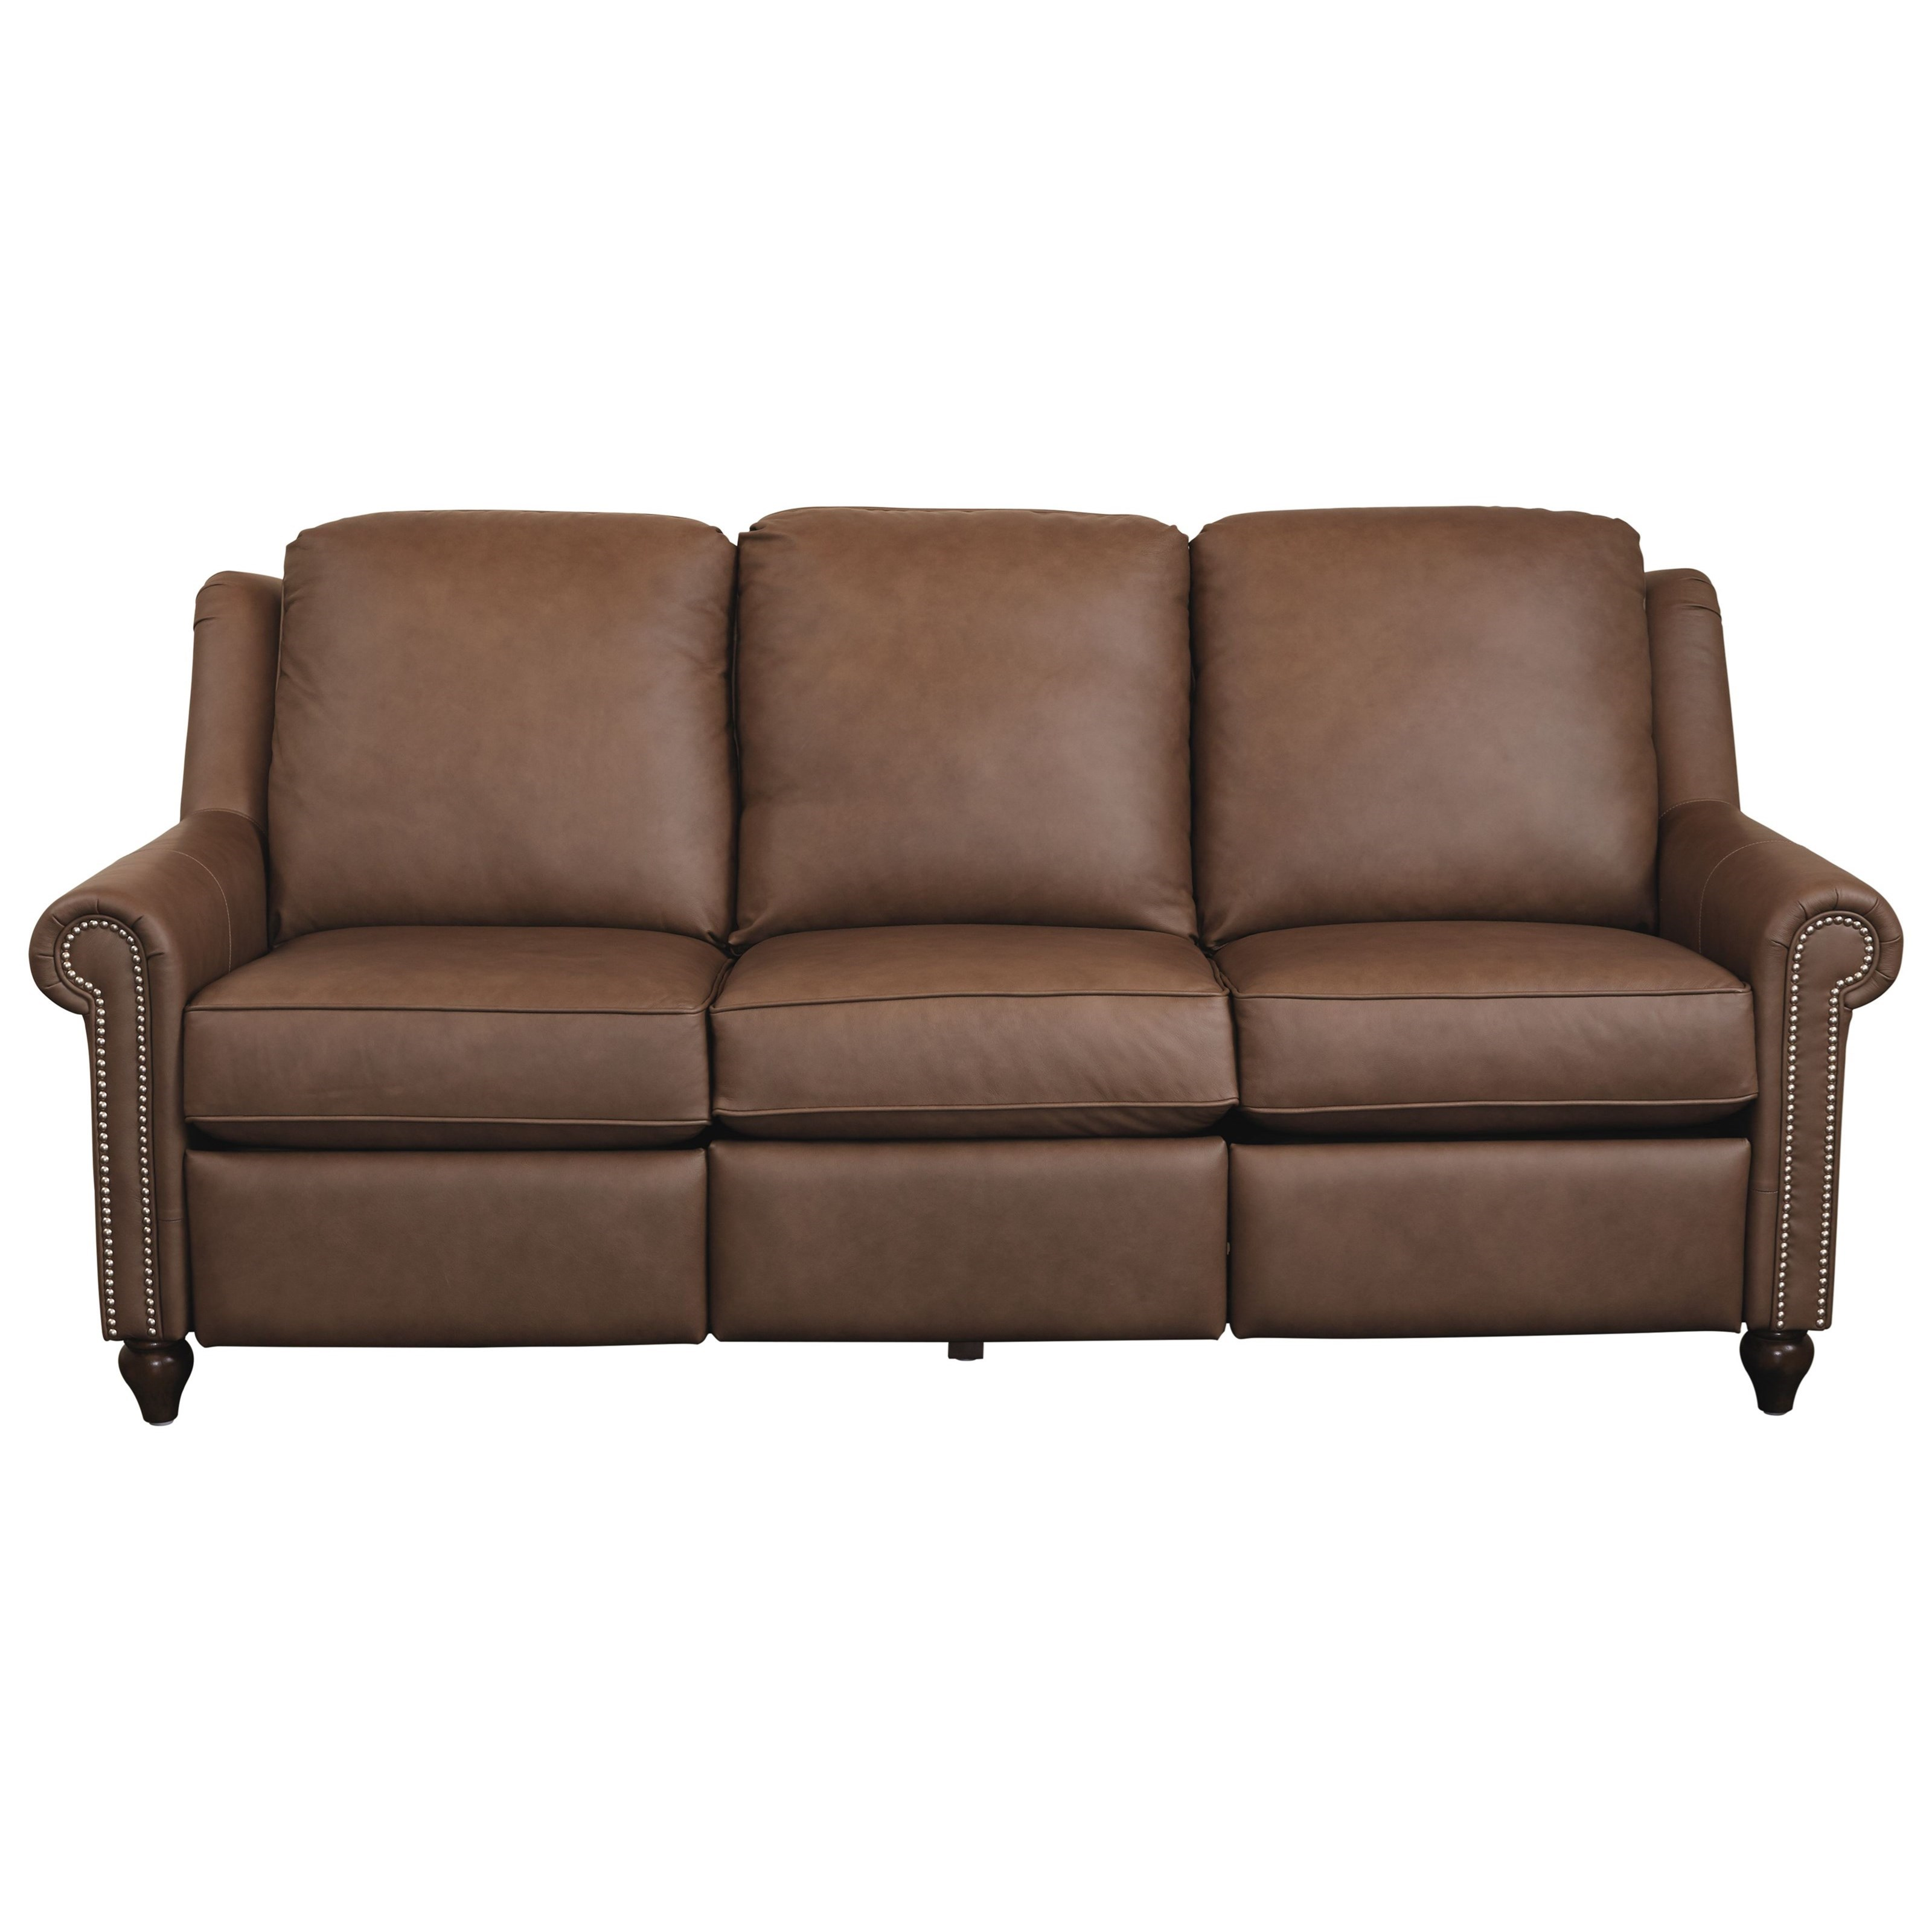 Magnificent Motion Customizable Power Reclining Sofa by Bassett at Bassett of Cool Springs